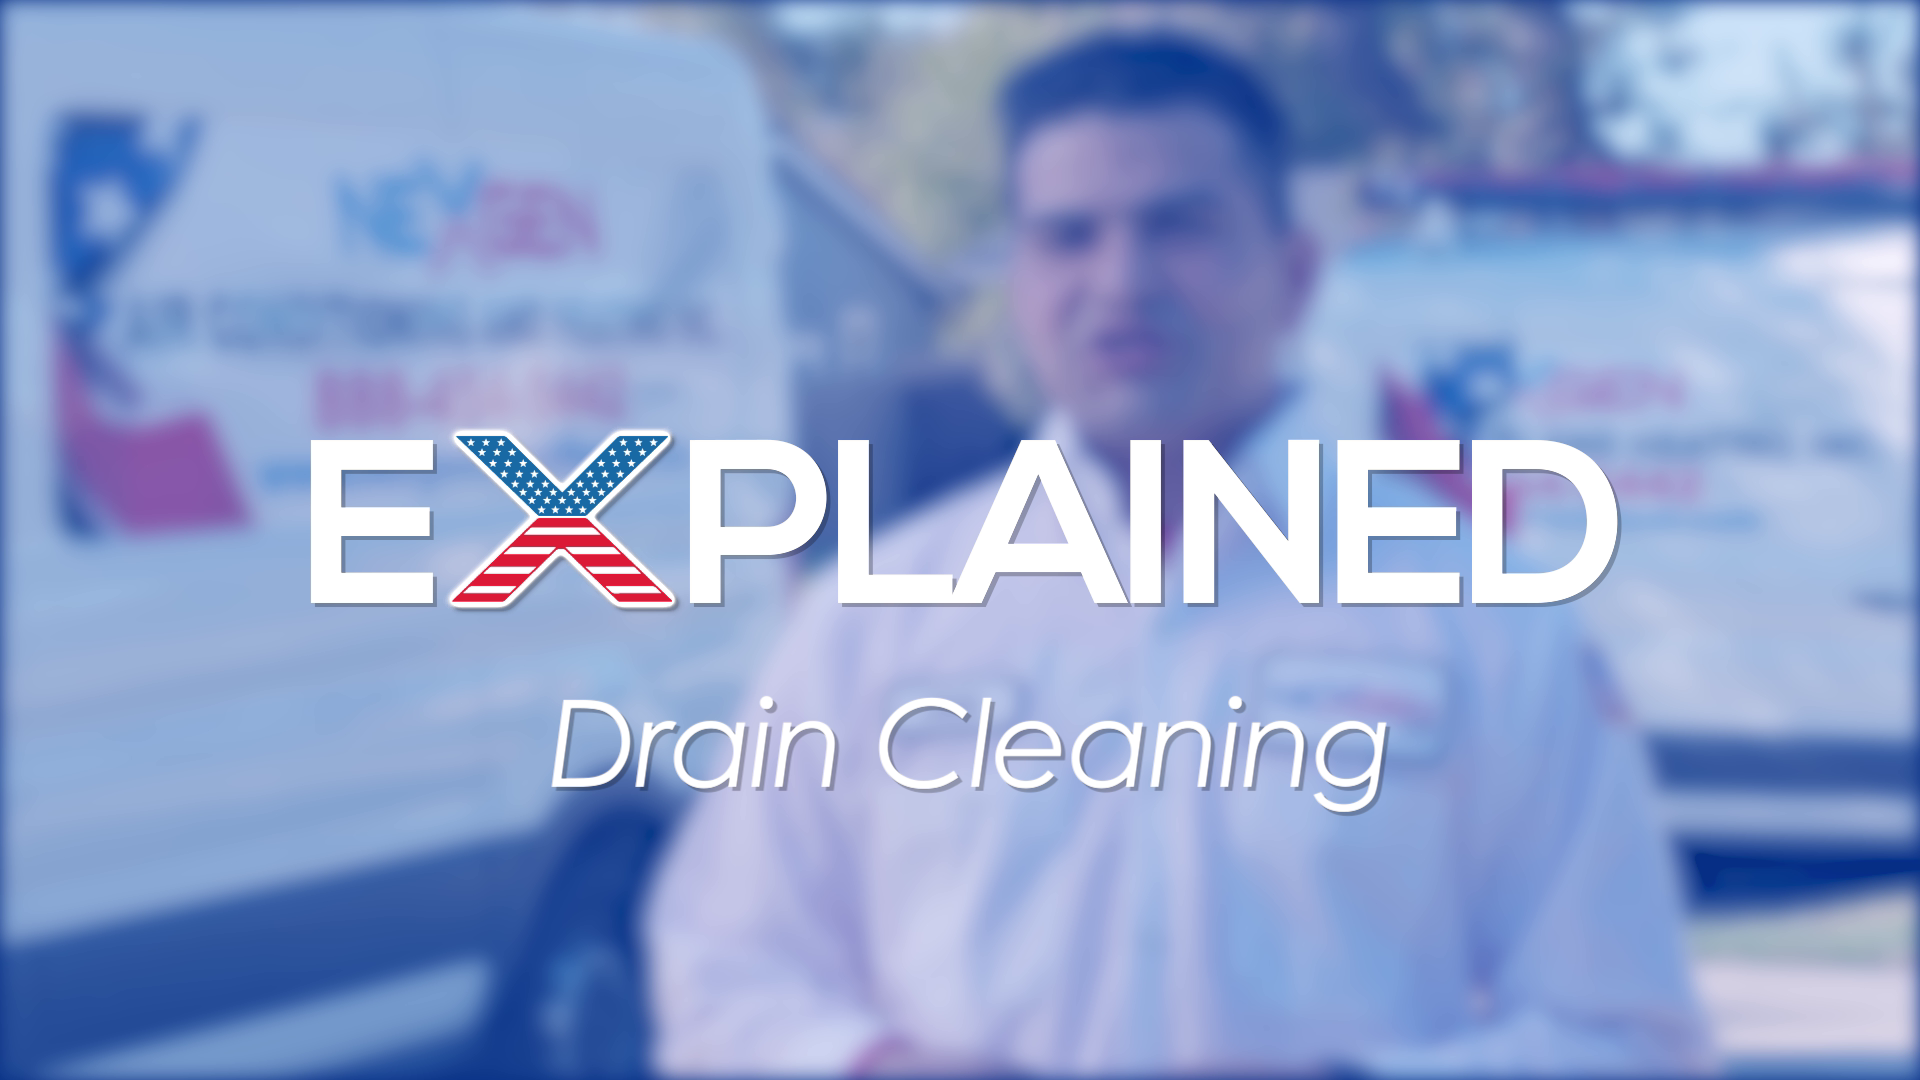 Drain Cleaning Xplained